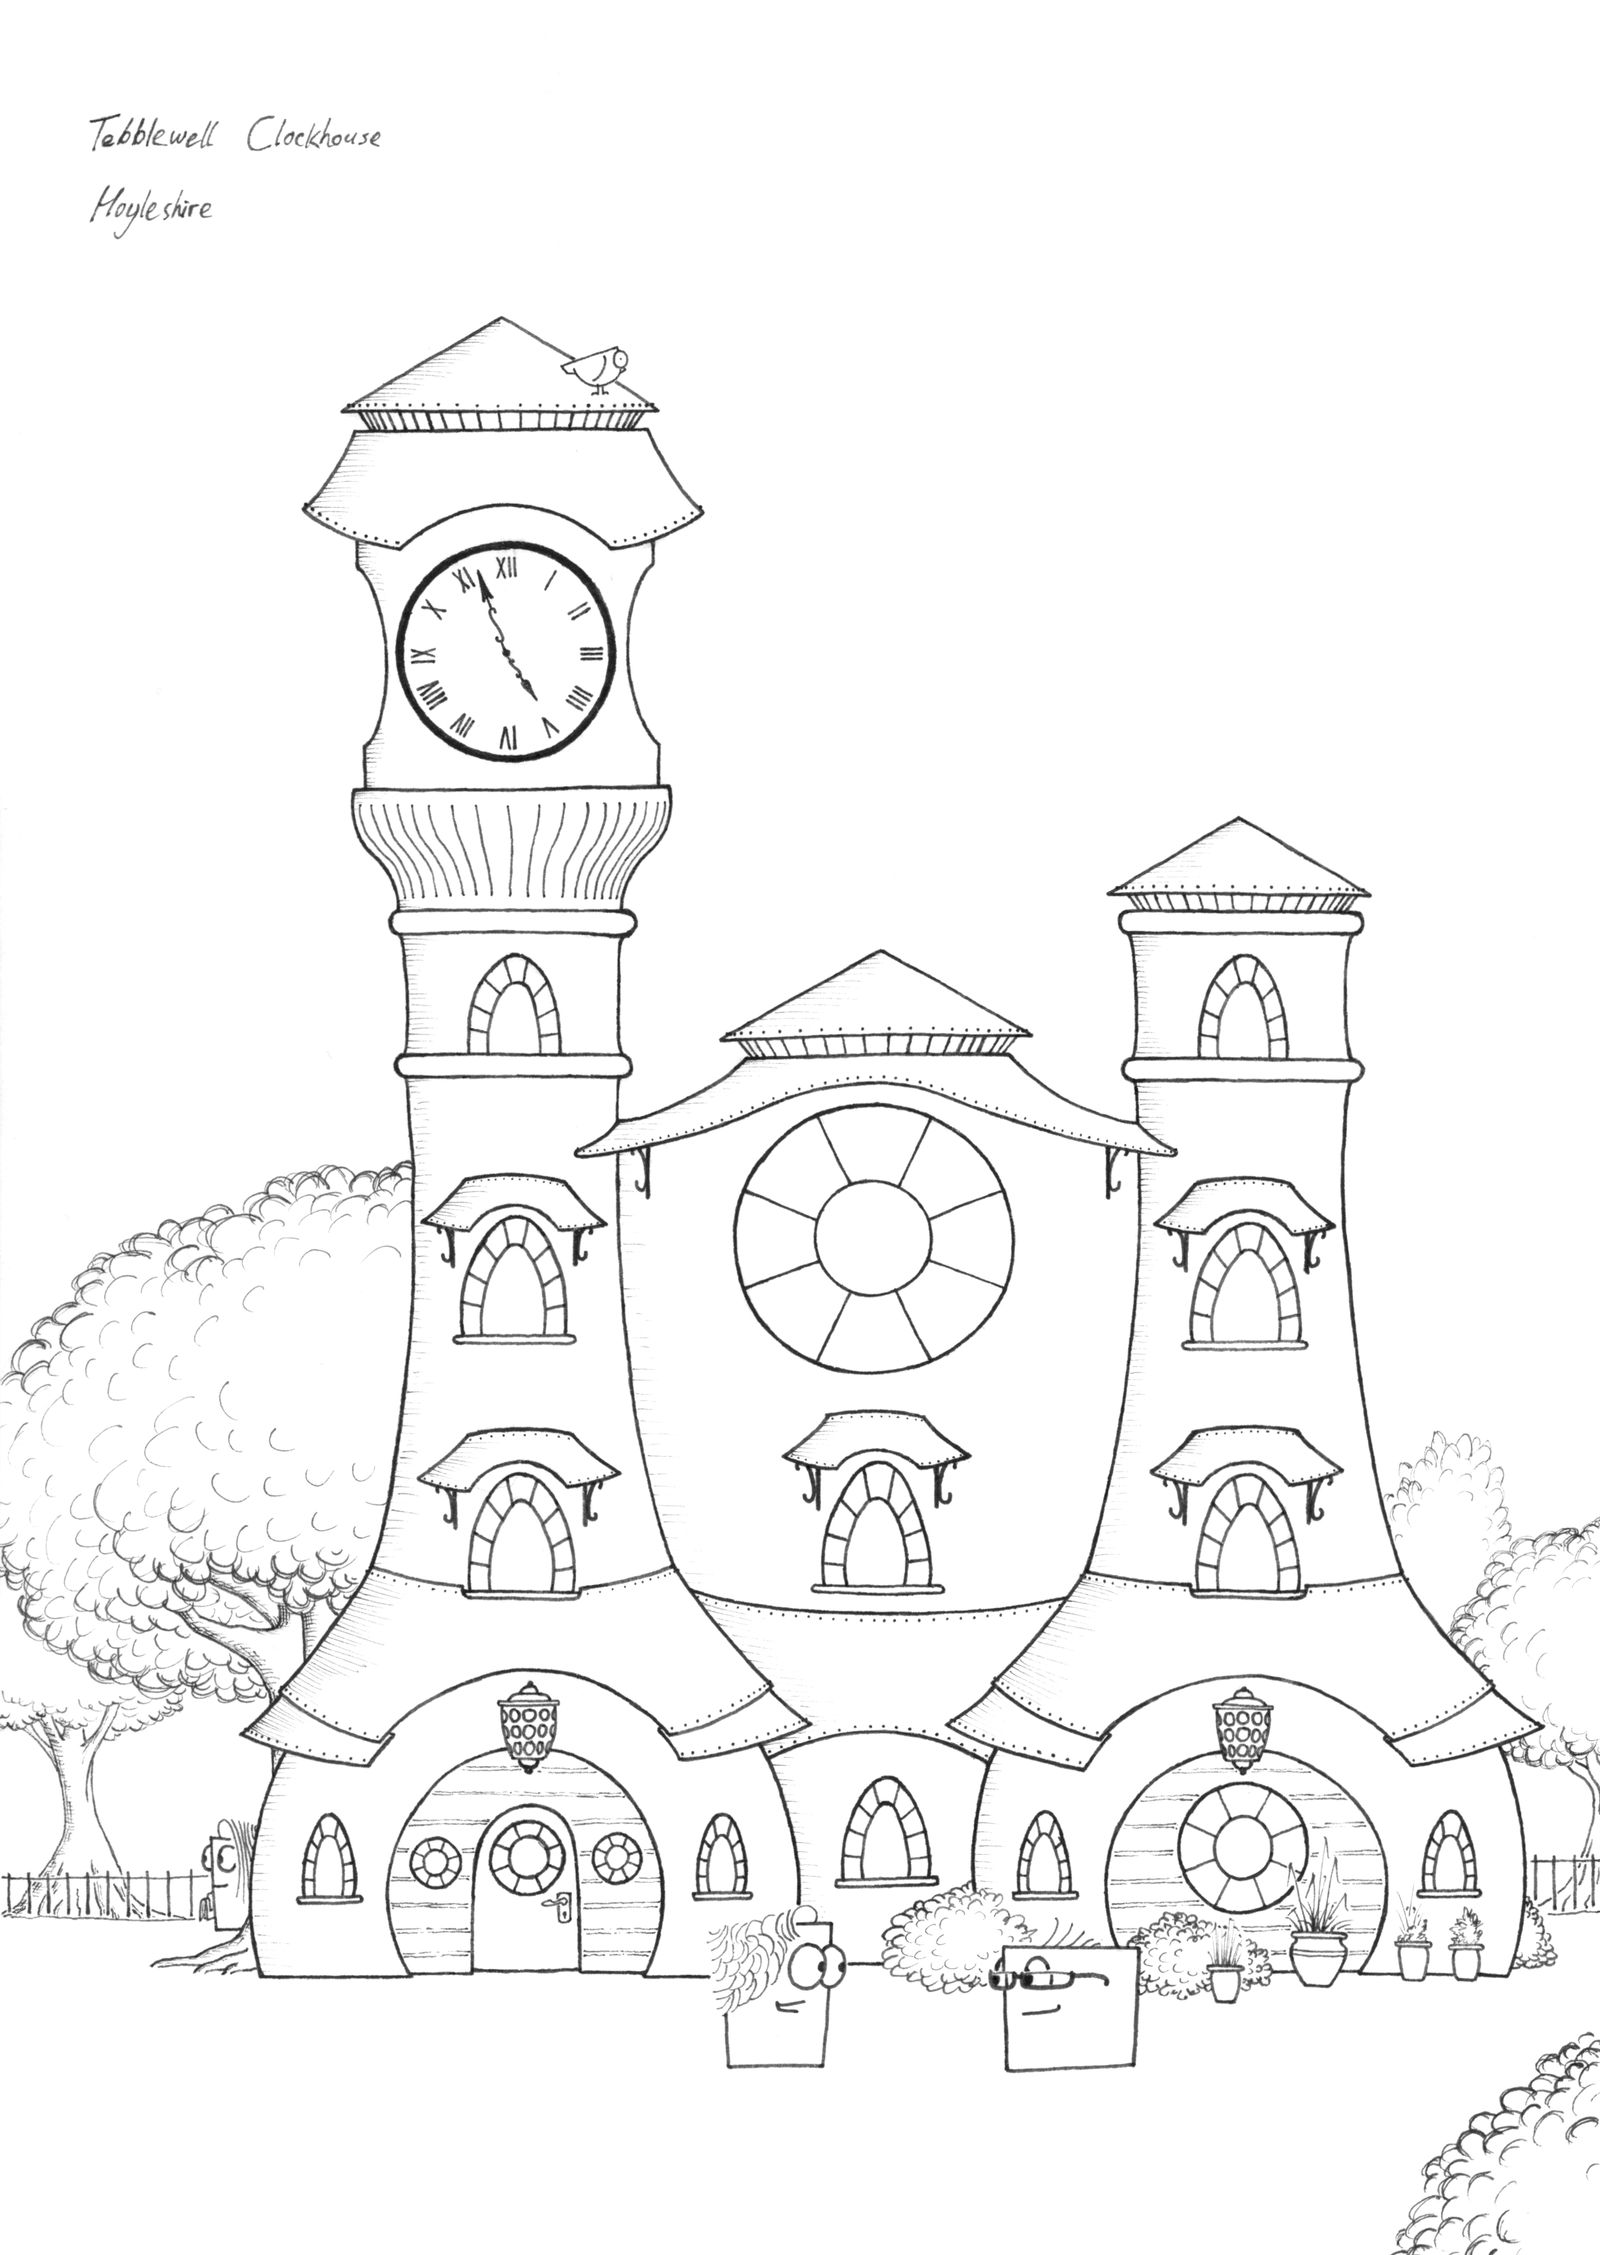 Papertowns Miniatures: Tebblewell Clockhouse